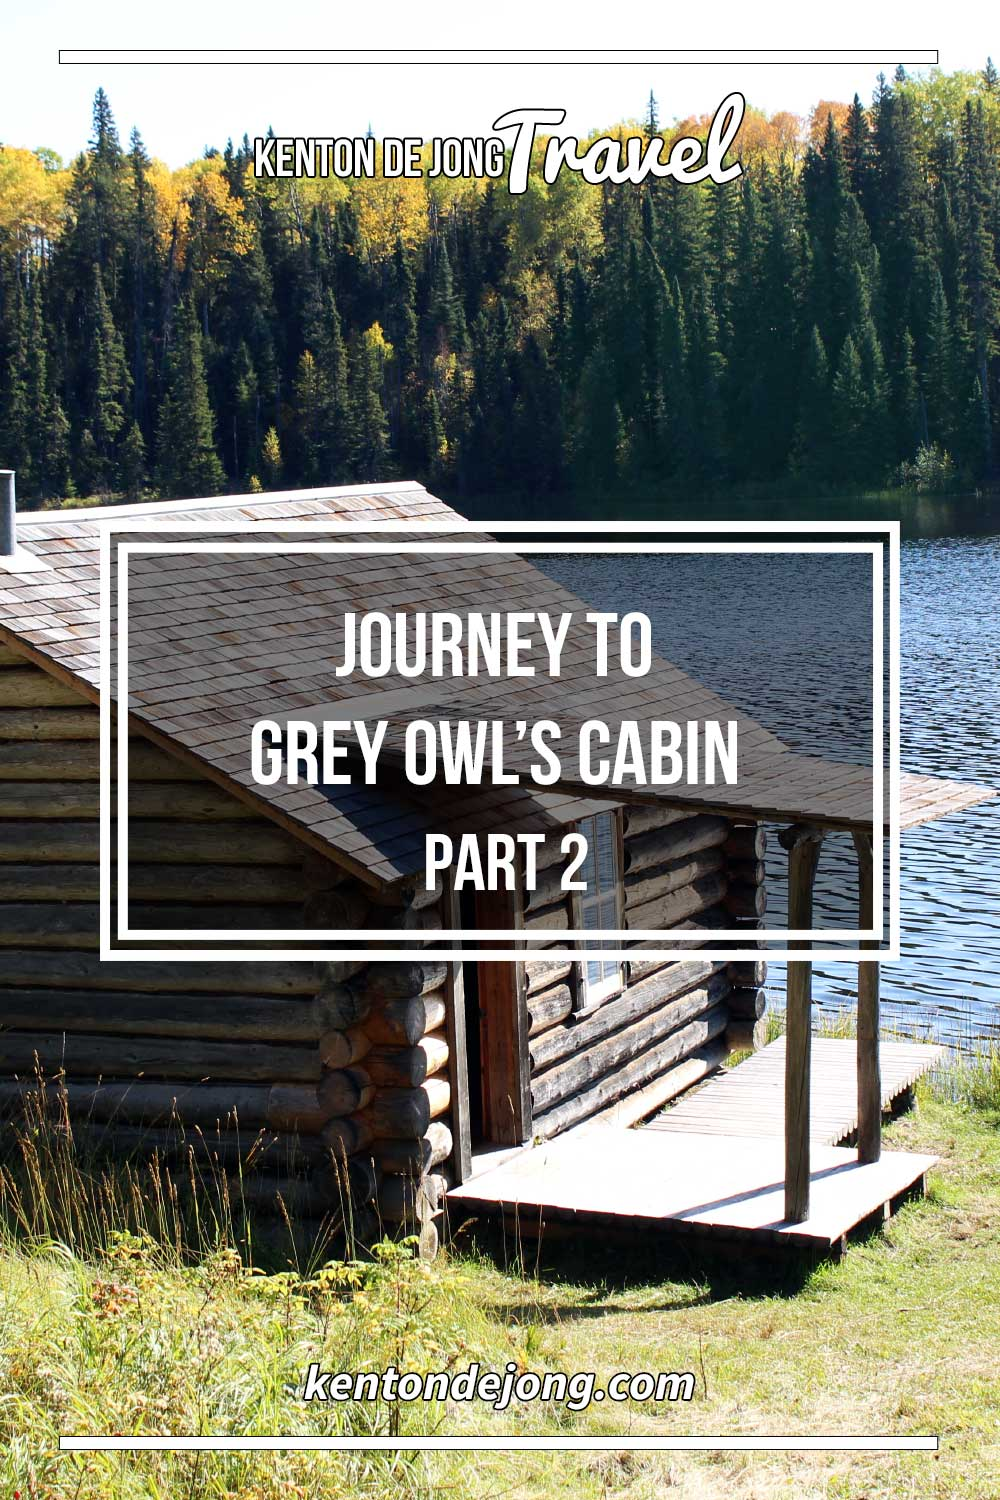 Journey to Grey Owl's Cabin – Part 2